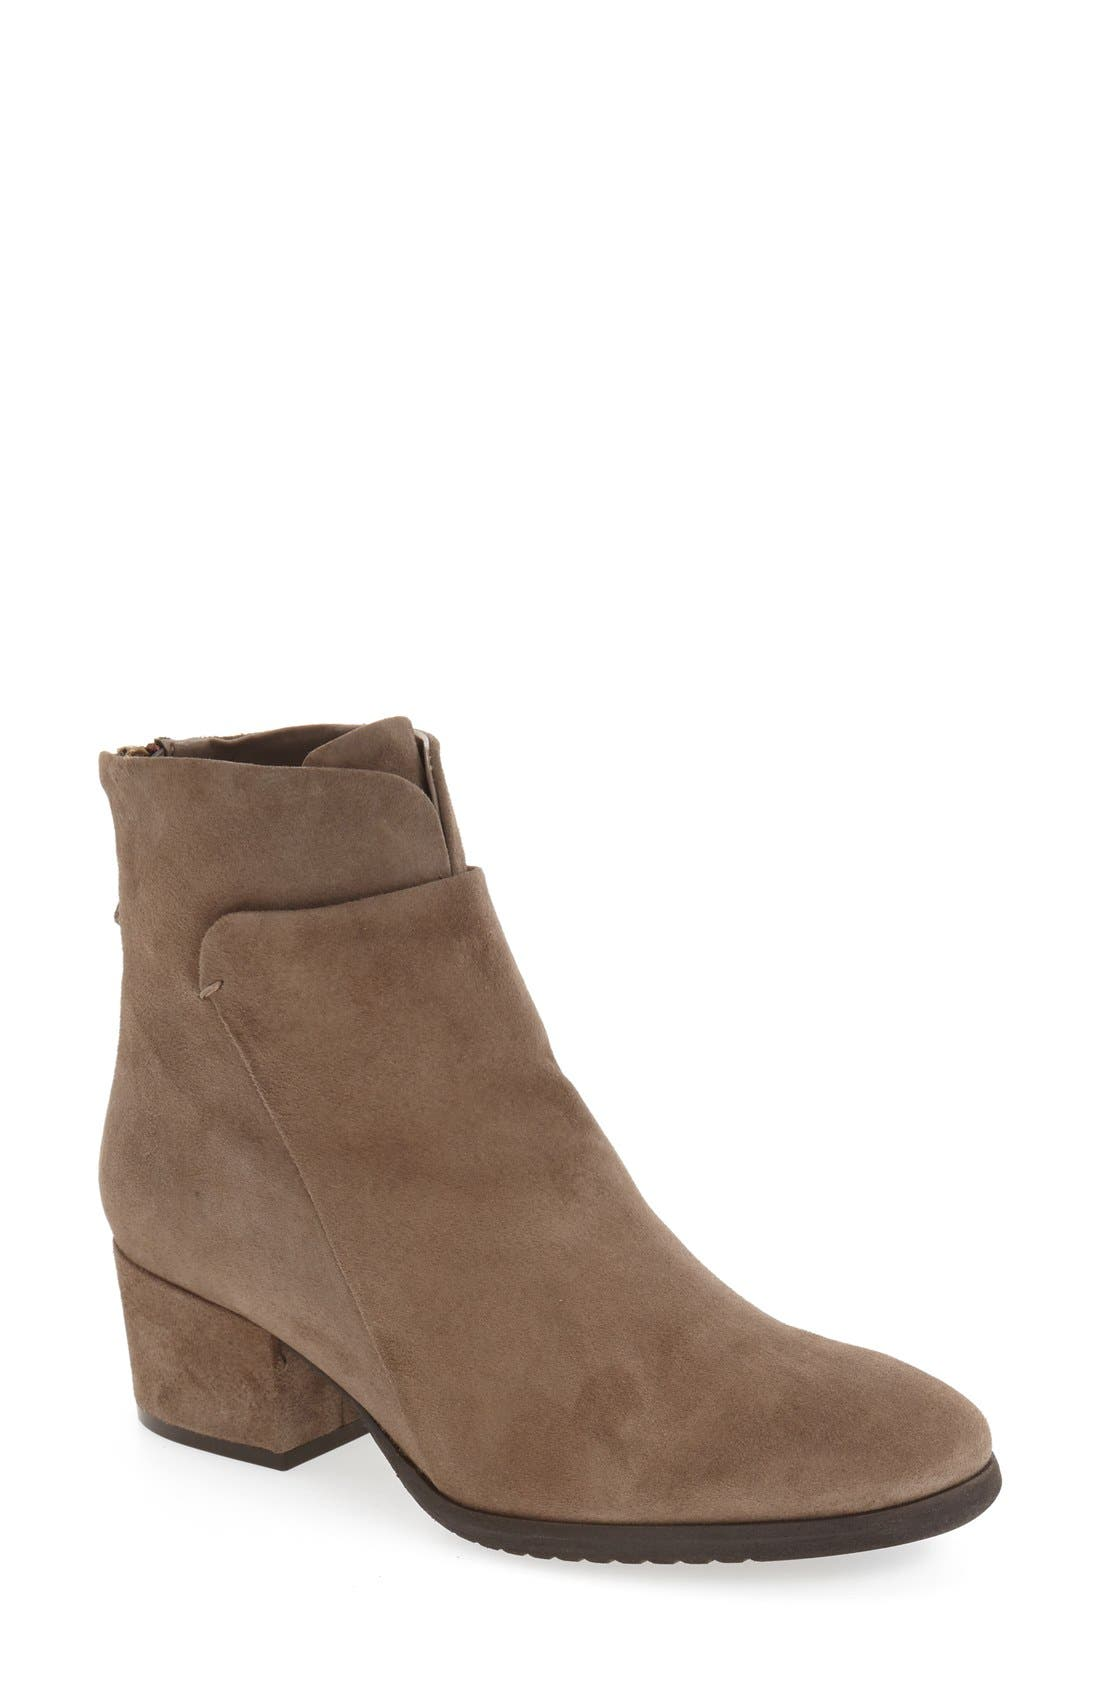 'Foss' Zip Bootie,                         Main,                         color, Fango Suede